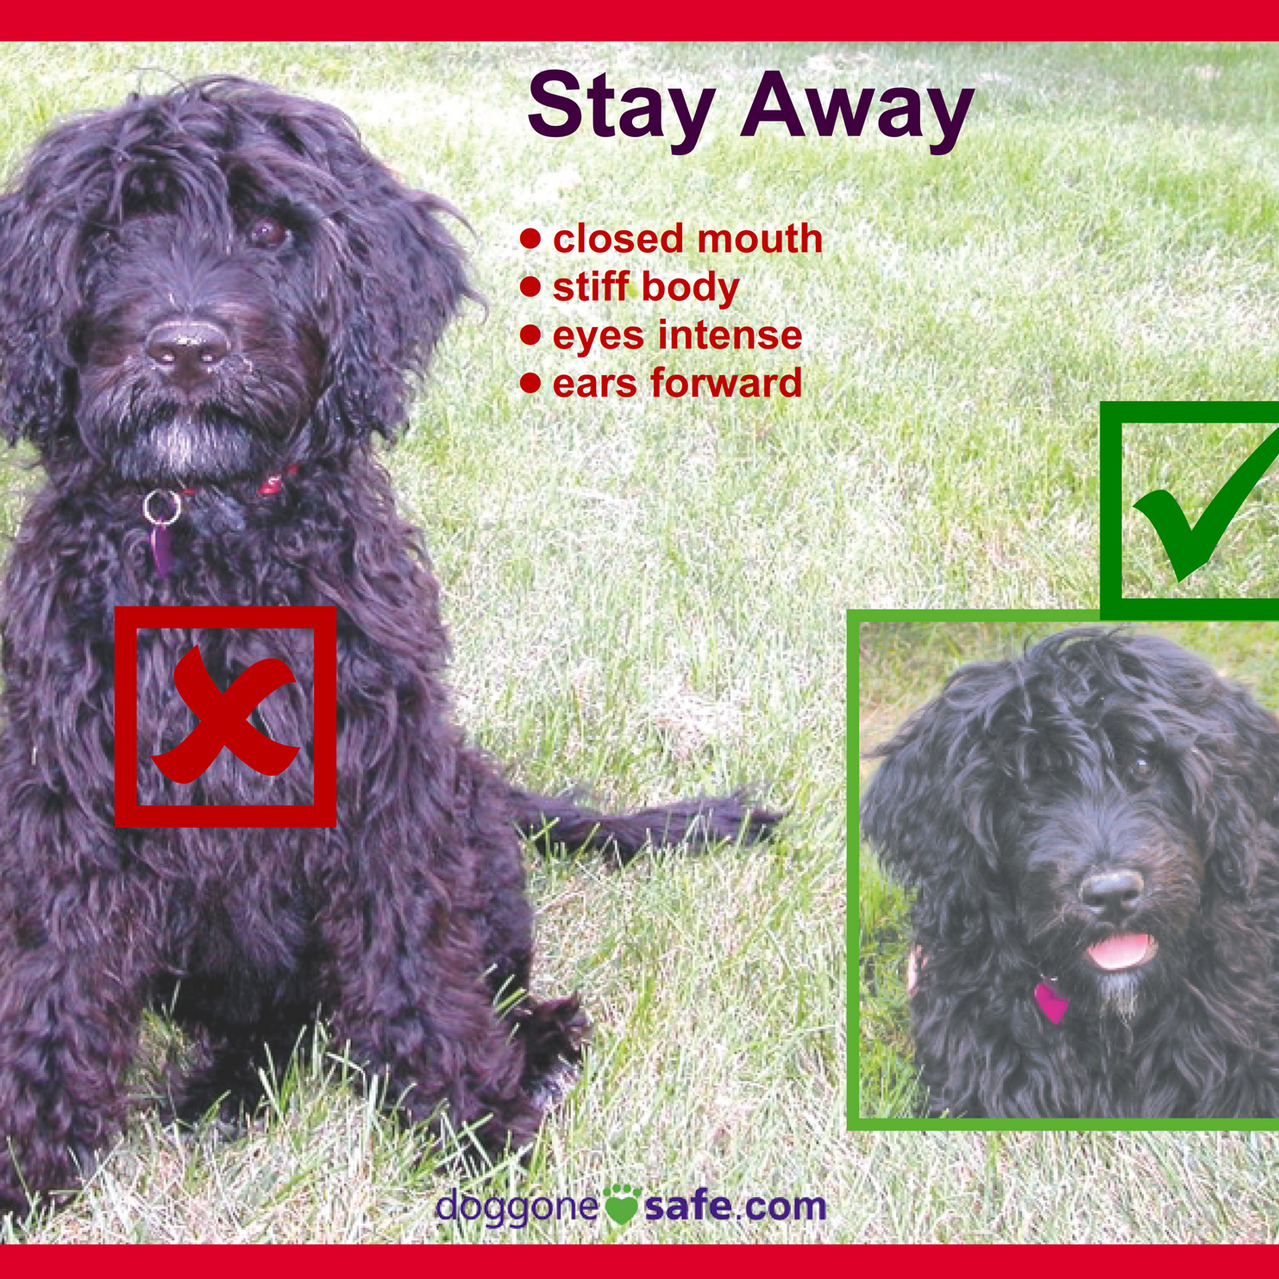 Signs of a Happy Dog and Stay Away_010